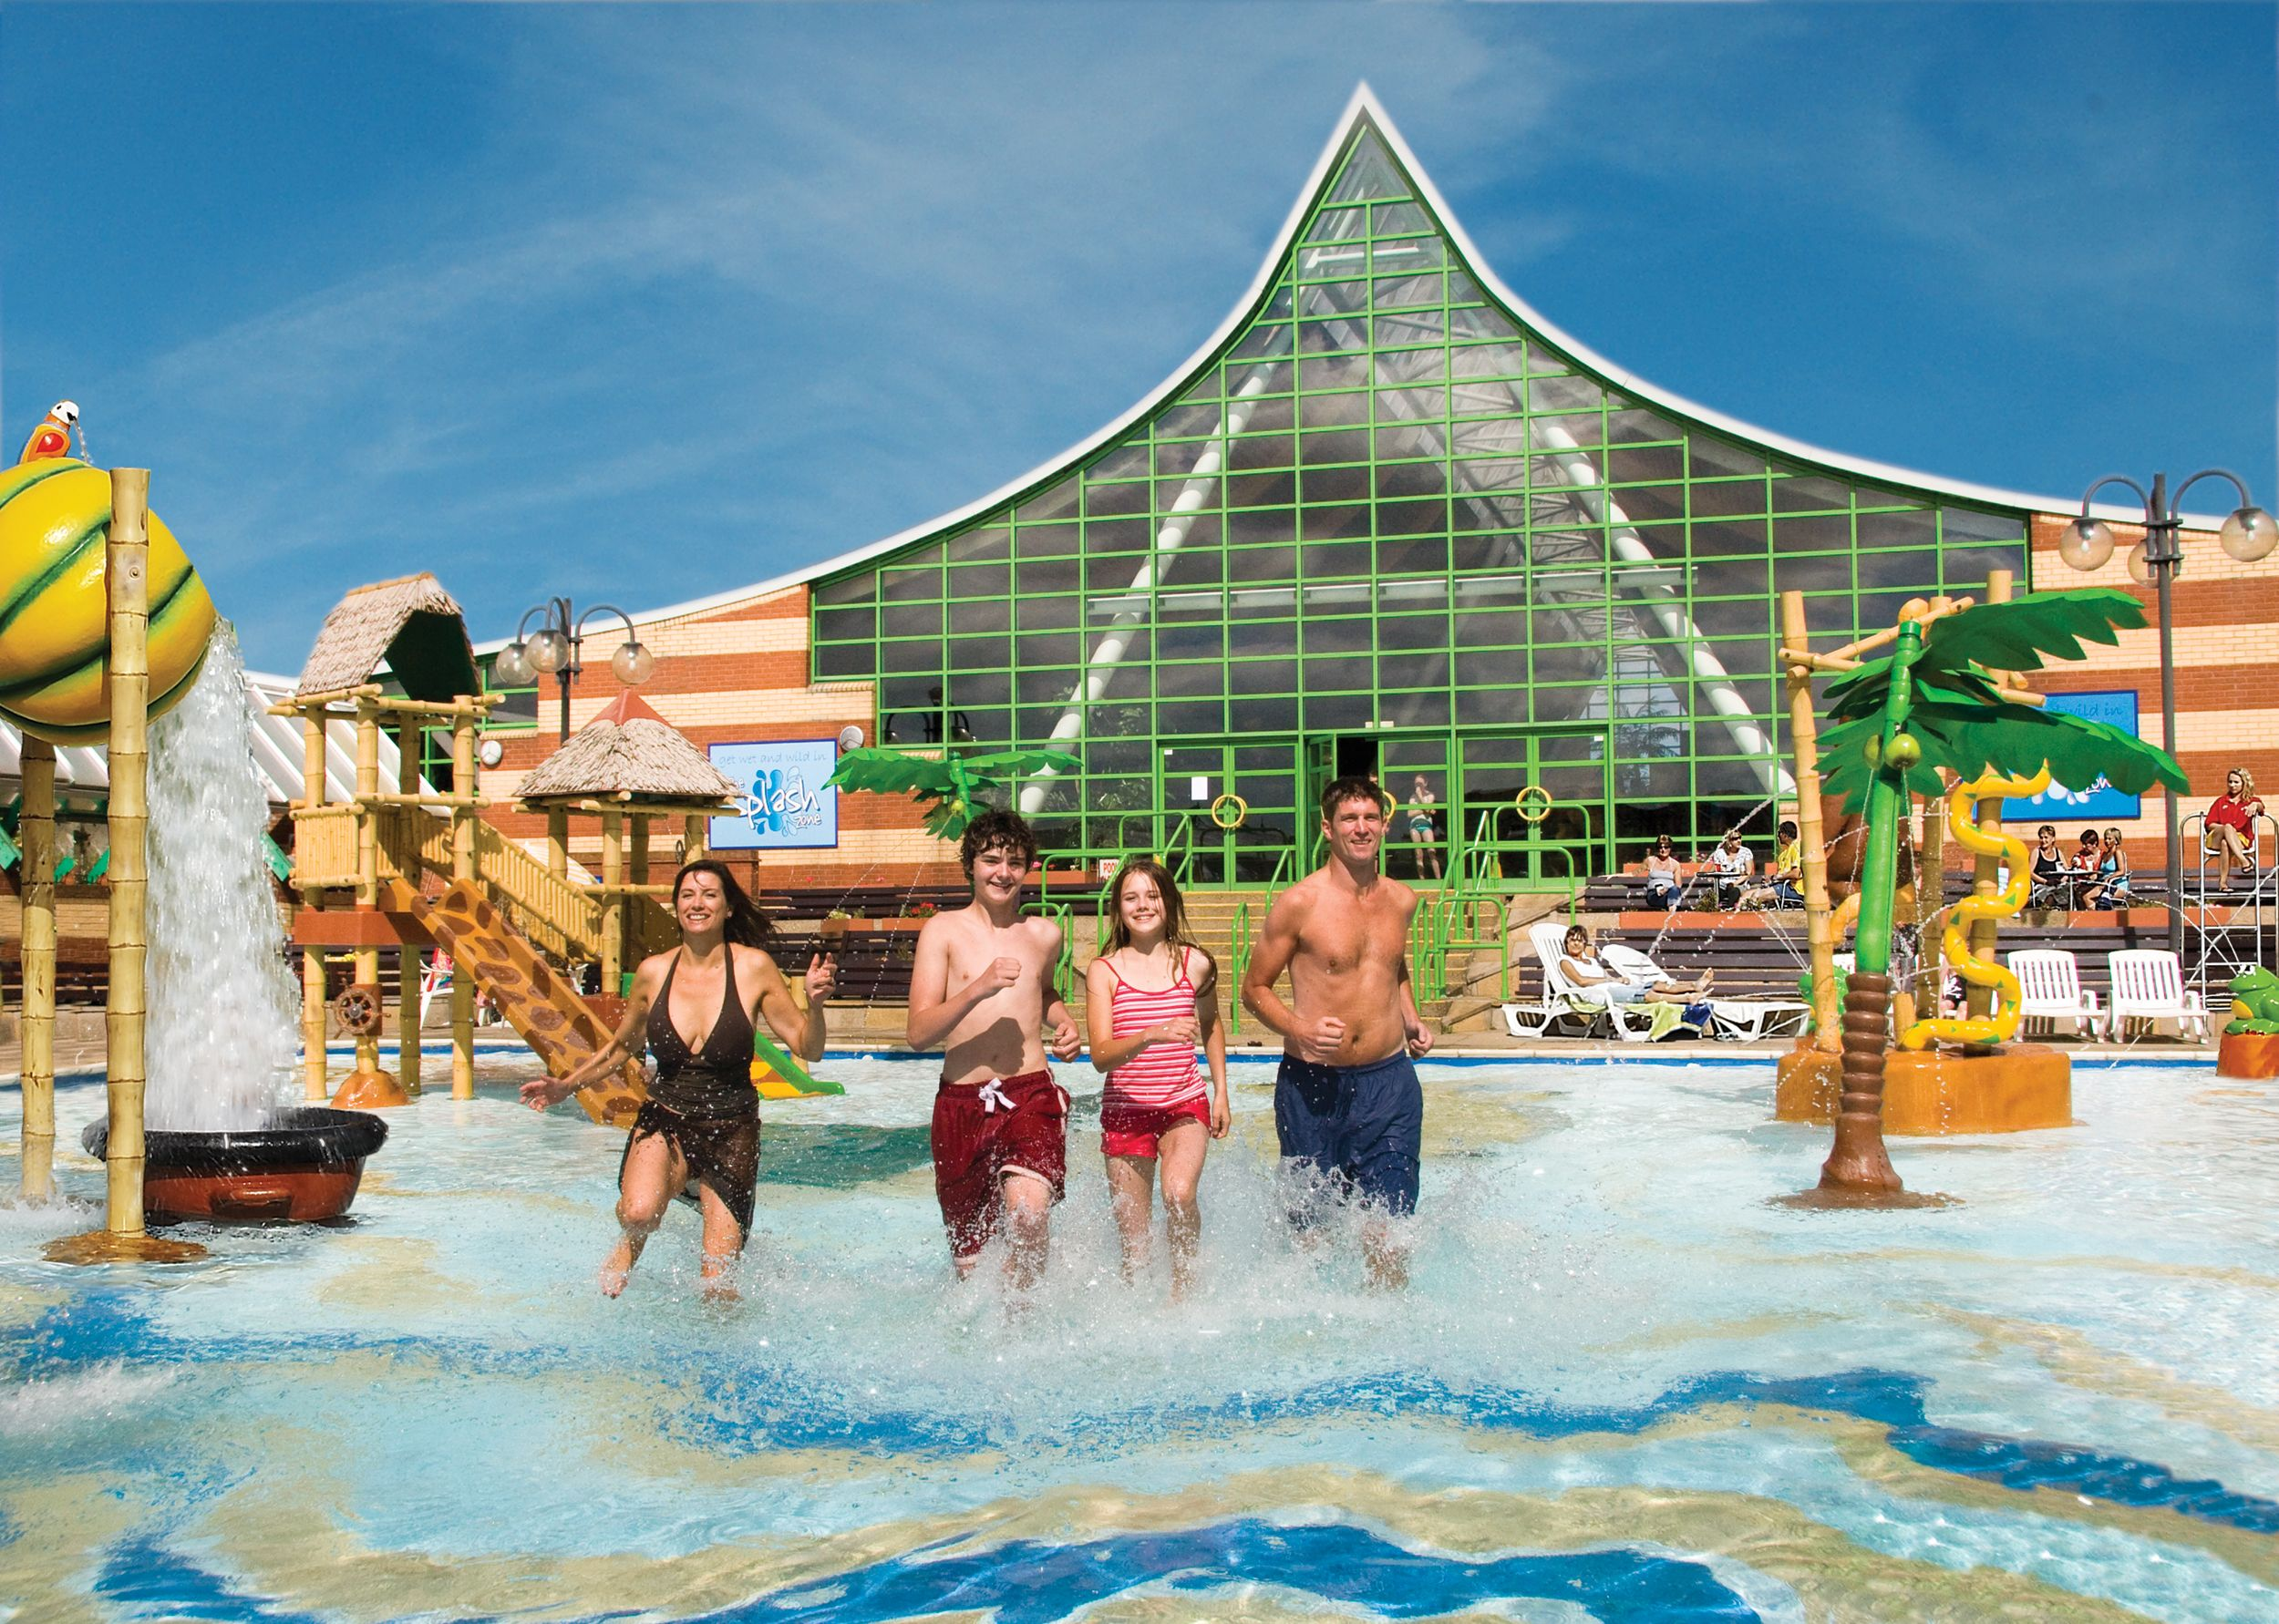 Vakantiepark Met Zwembad Schotland Splash Zone At Vauxhall Holiday Park Perfect Way To Spend A